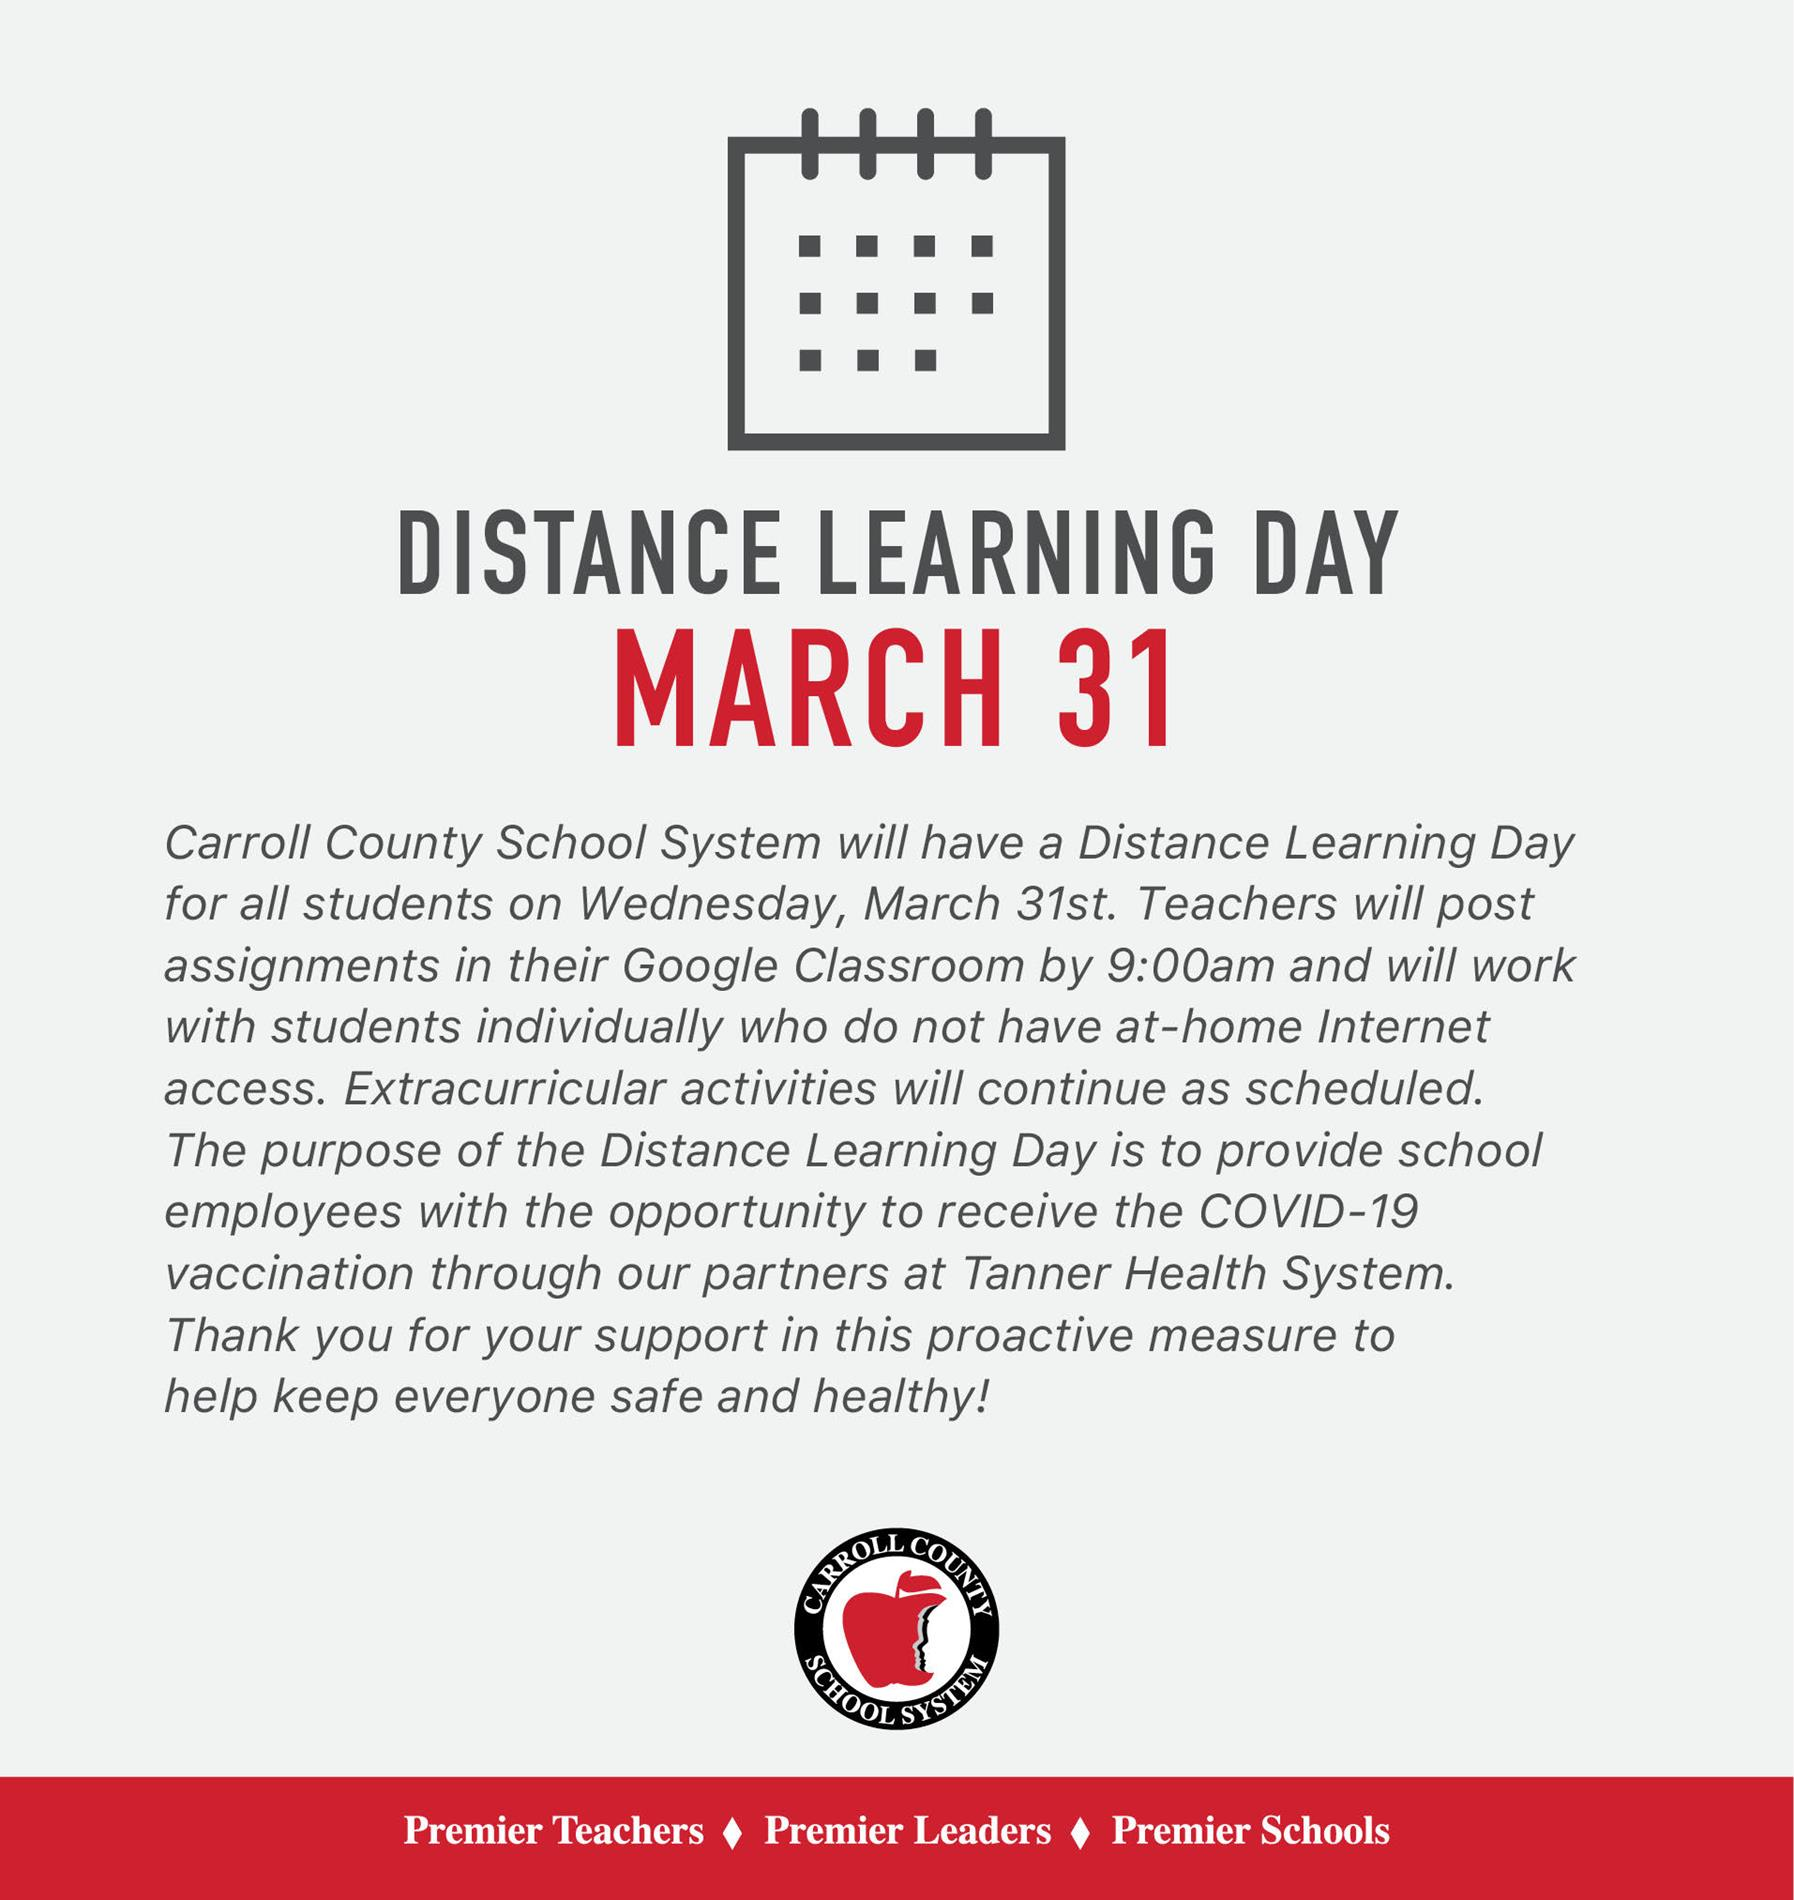 Infographic on Distance Learning Day